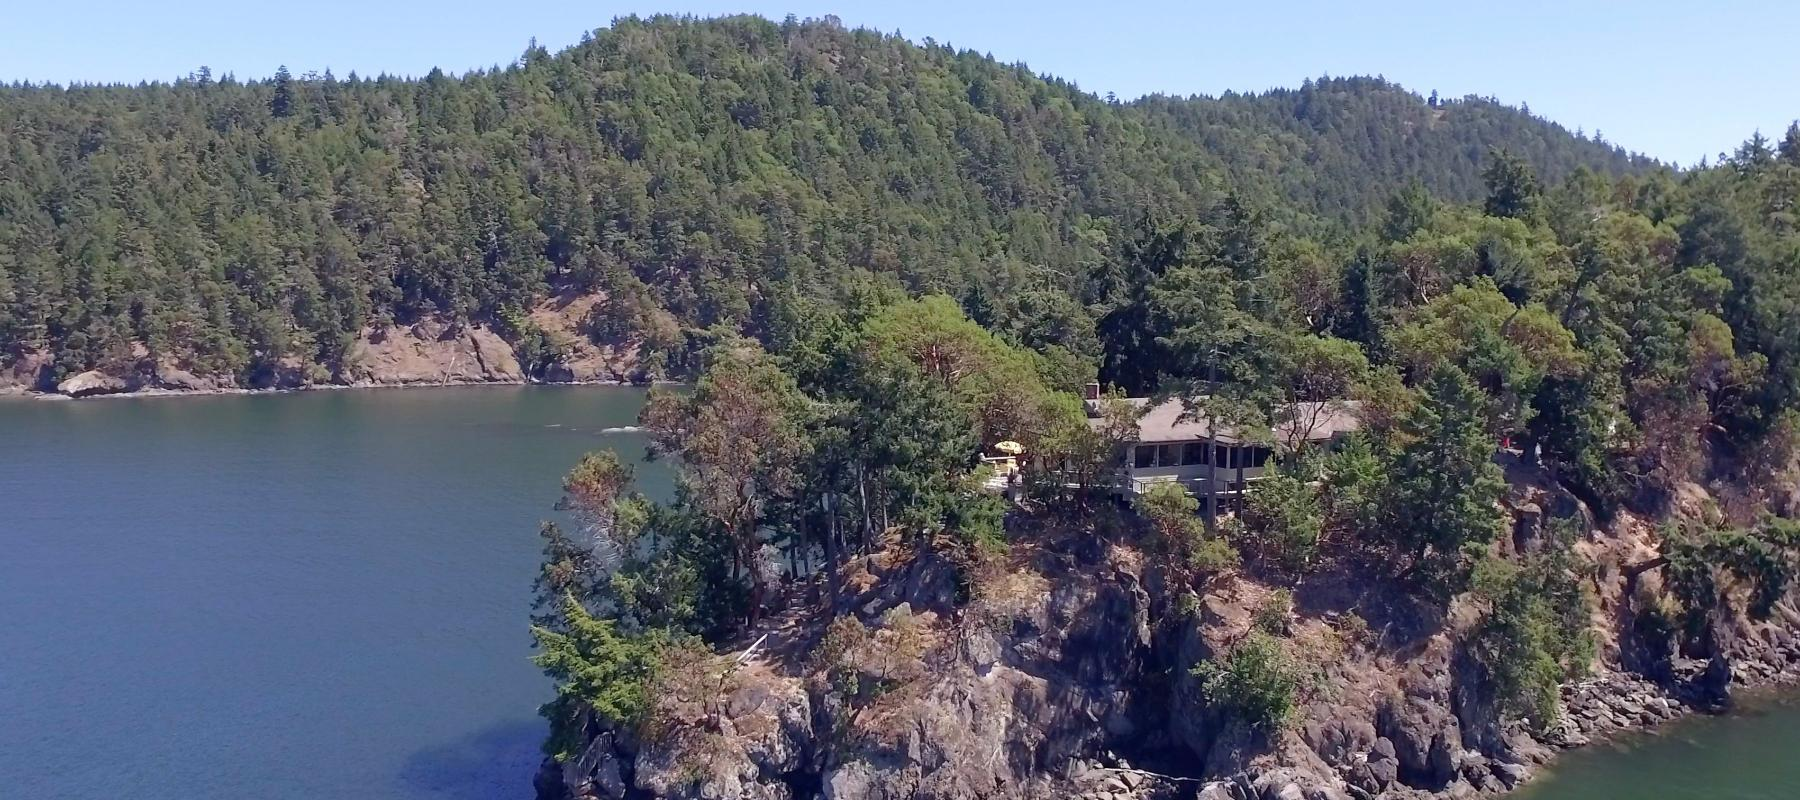 Private Islet on Pender Island - 2601 Harpoon Road - Dockside Realty